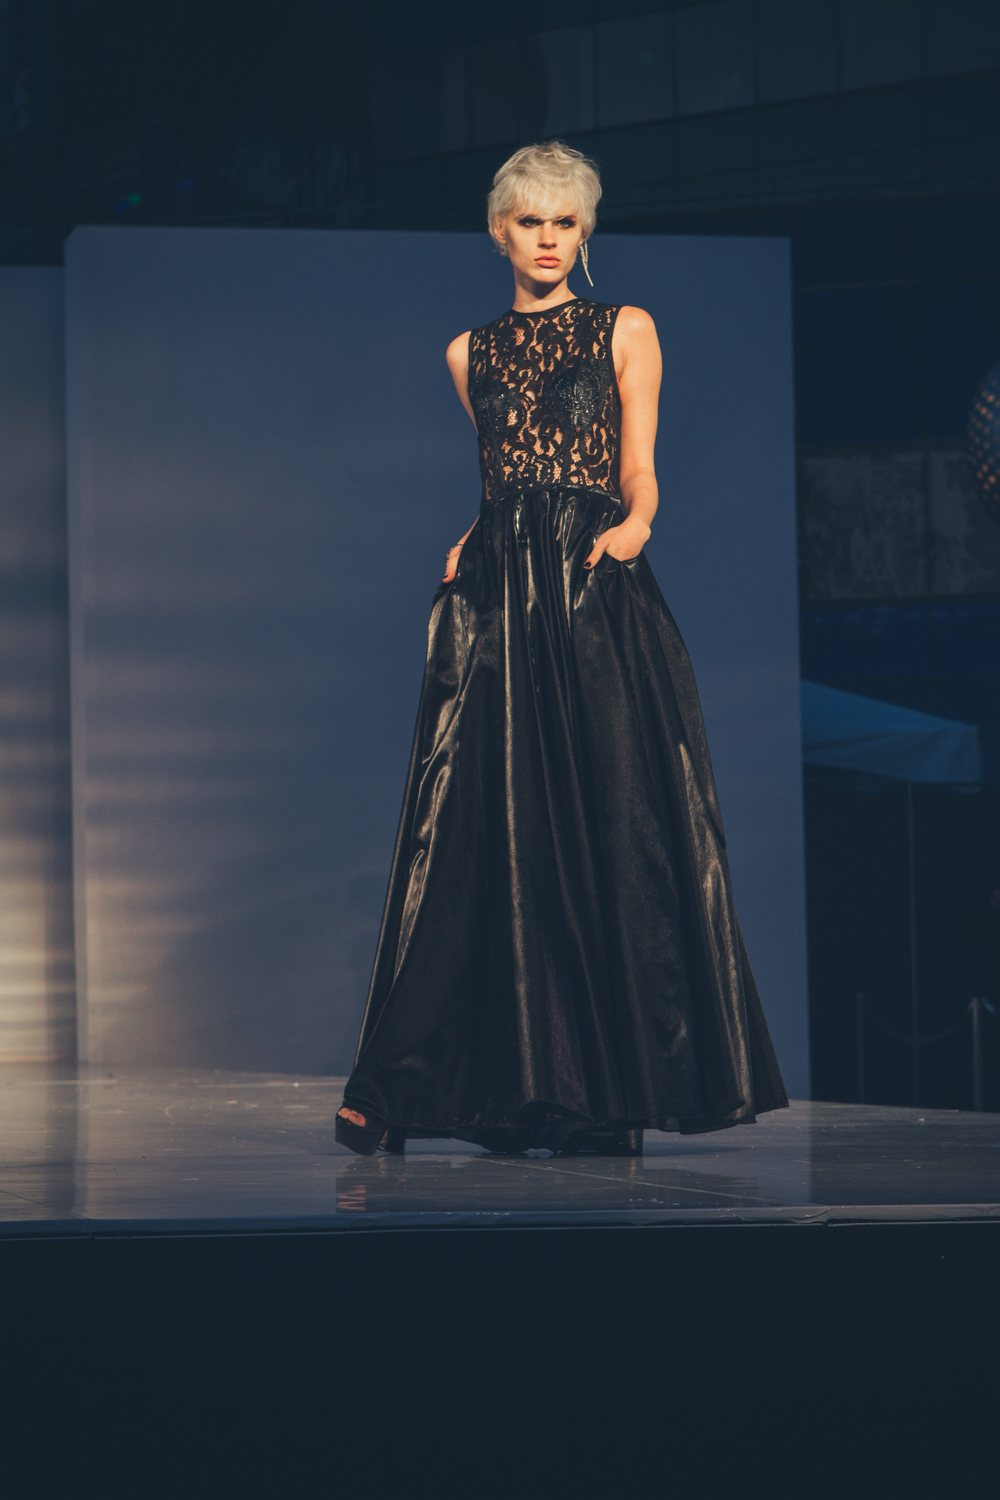 Coral Castillo Designs - Shaina Lavine - Style Fashion Week Los Angeles - Kyle Rea Photography - cREAtive Castle Studios.jpg